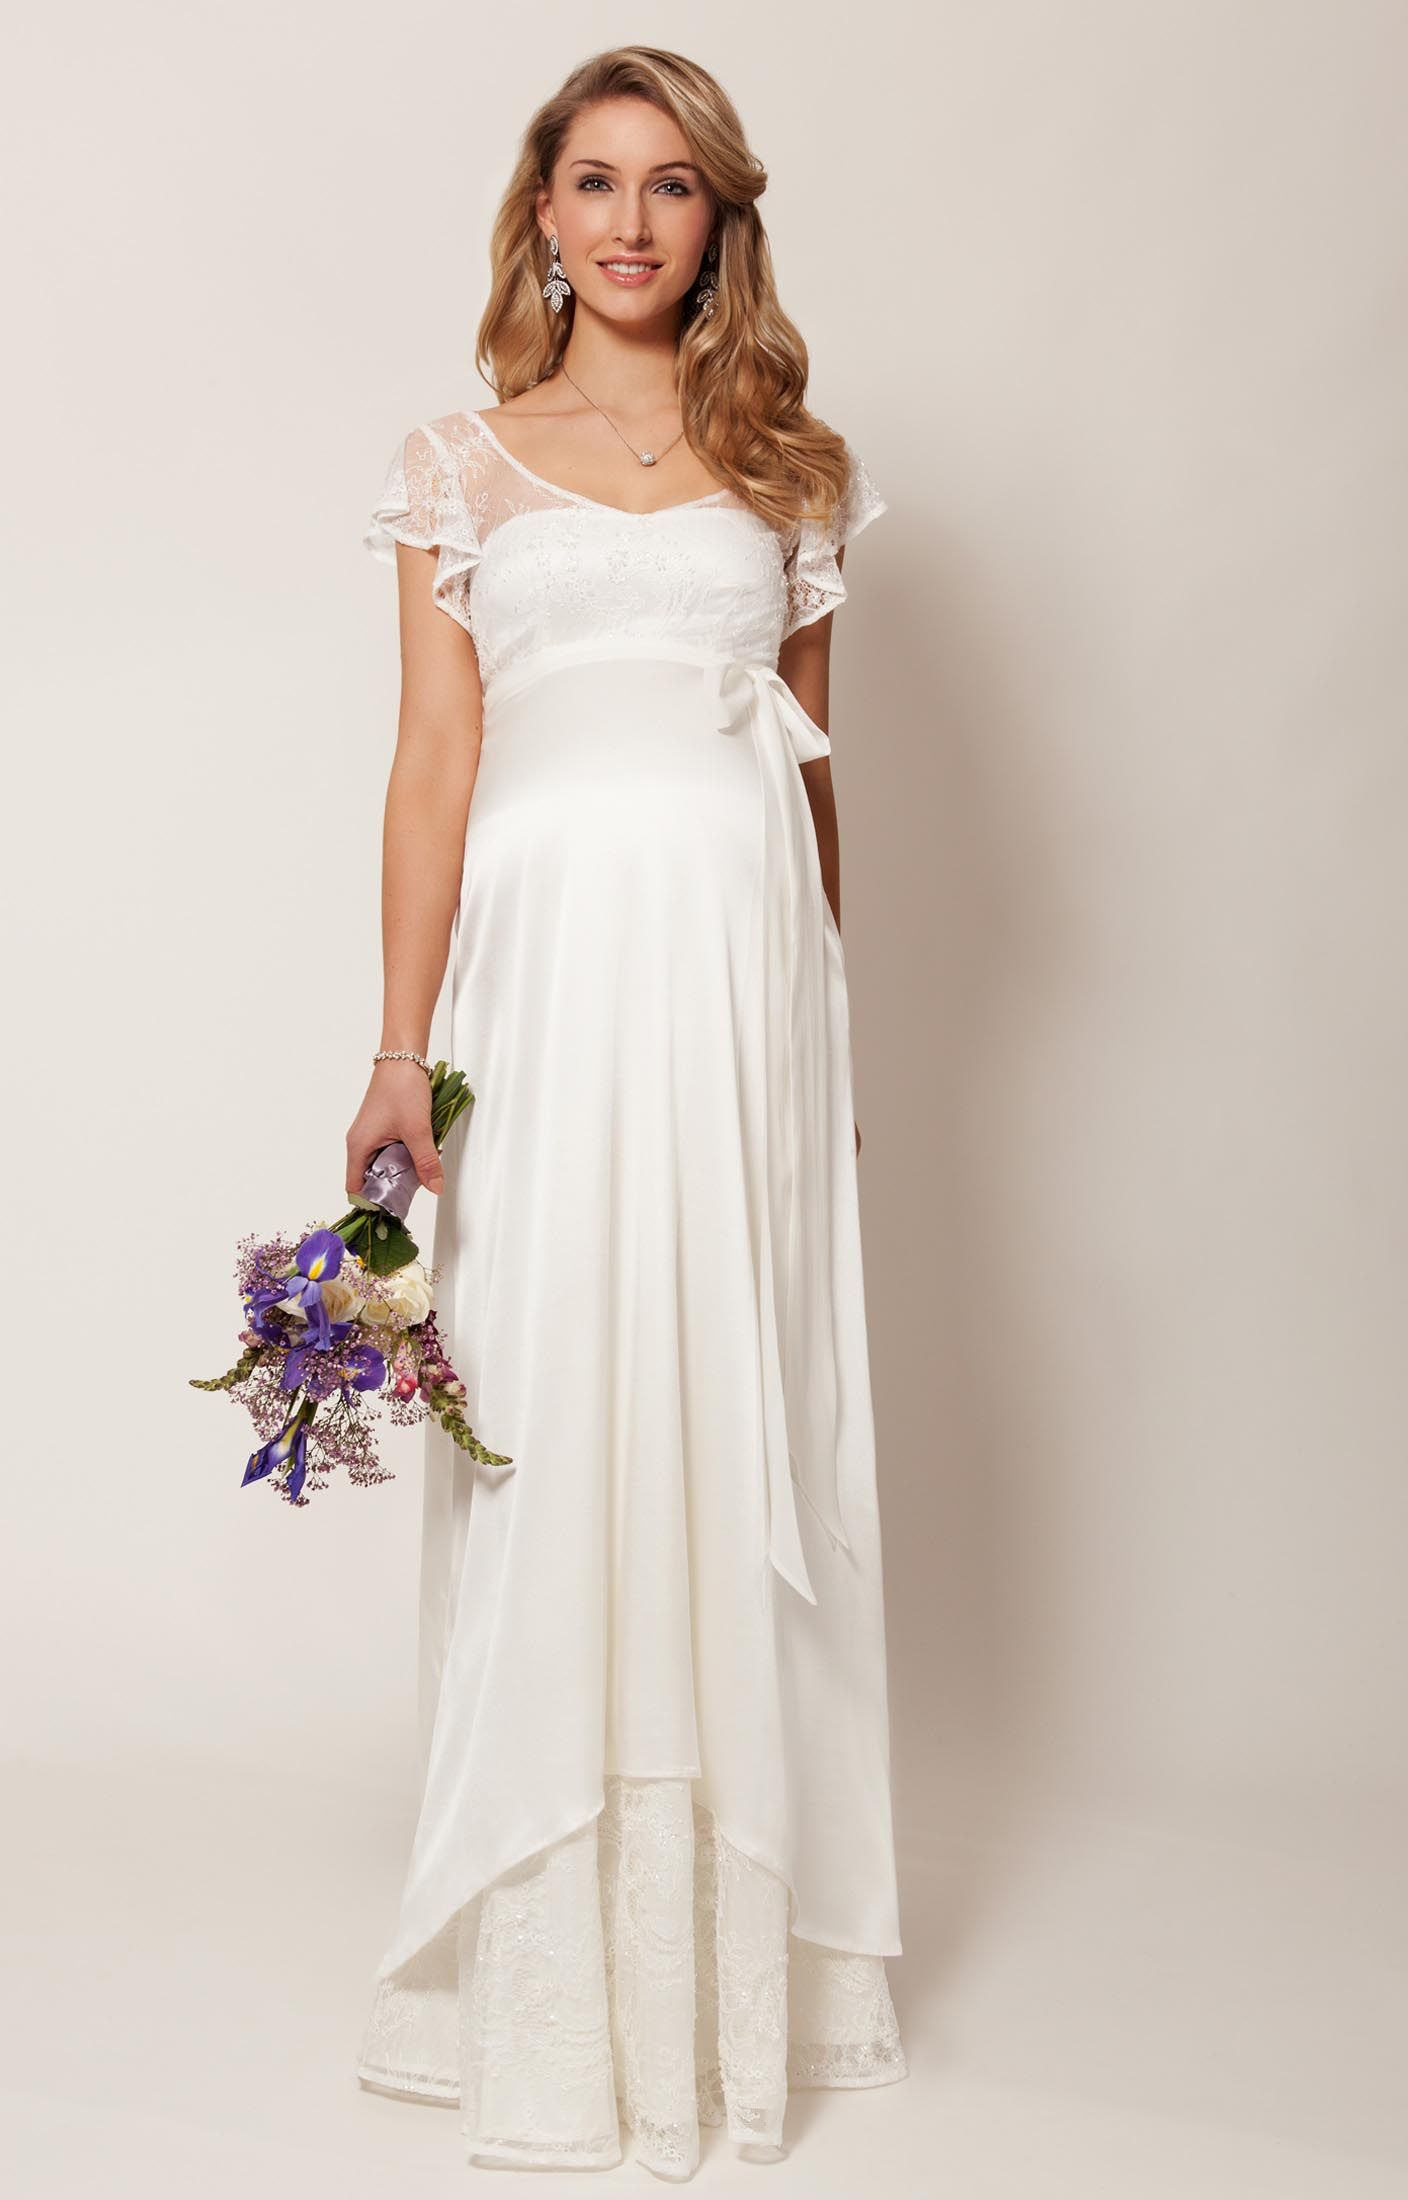 Juliette Maternity Wedding Gown Ivory By Tiffany Rose